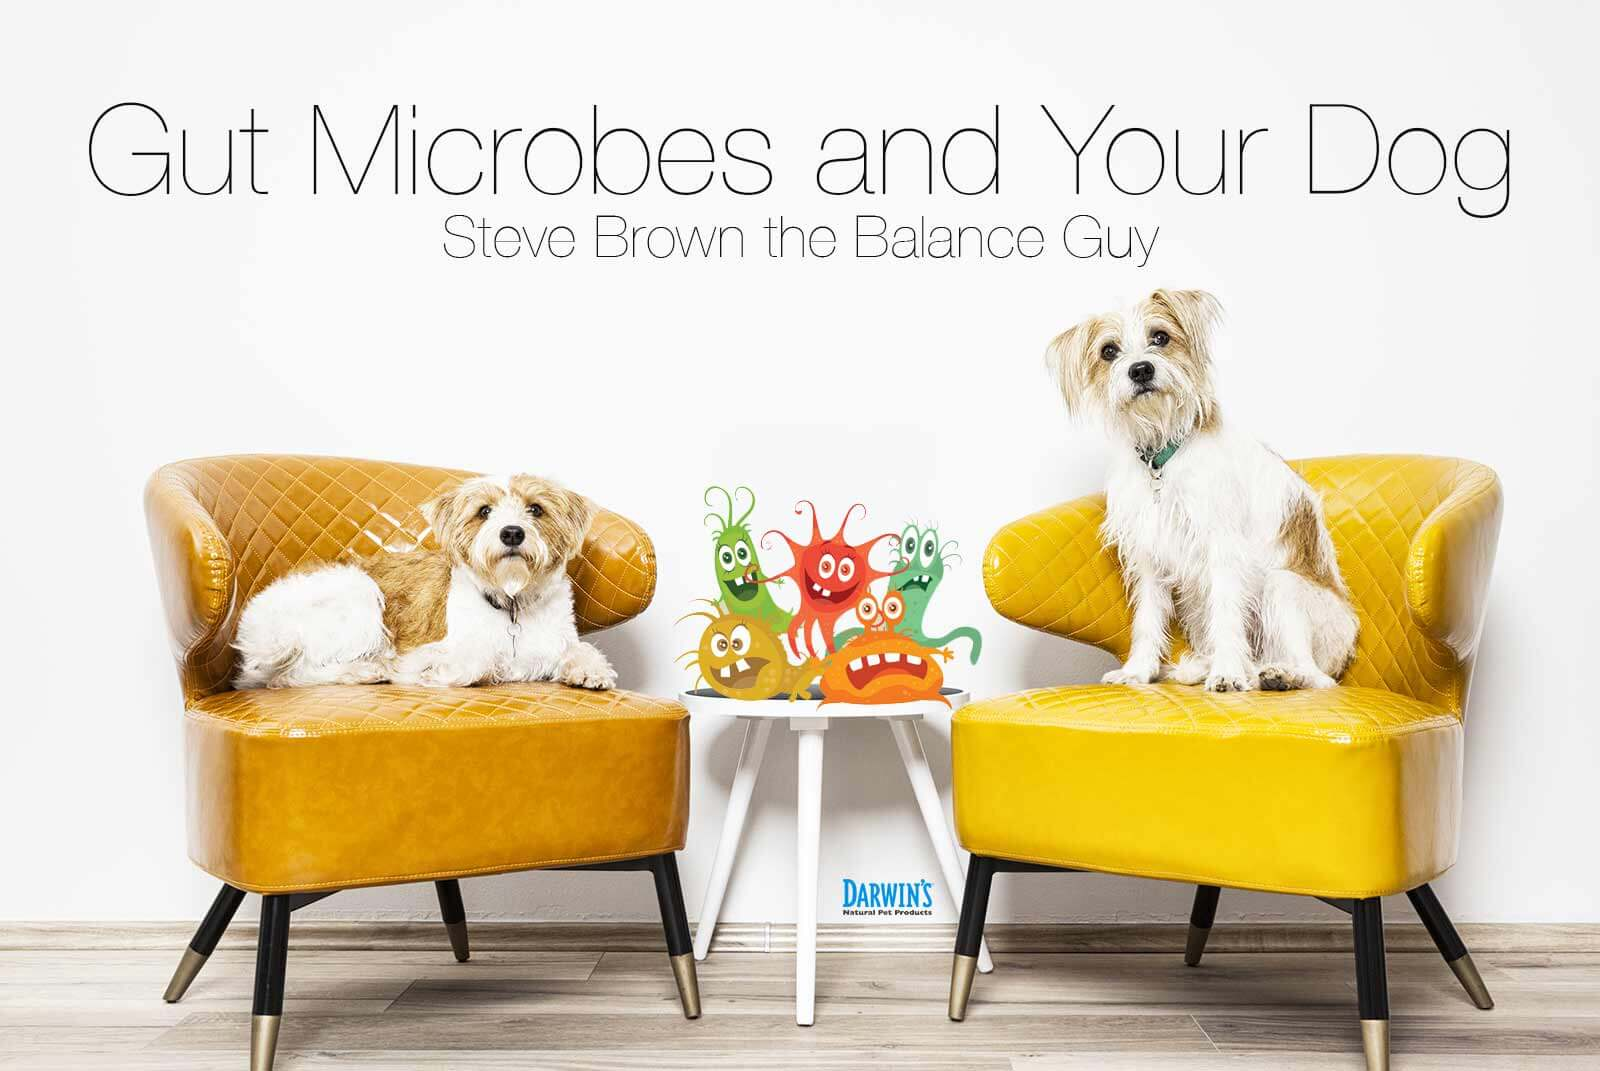 Gut Microbes and Your Dog